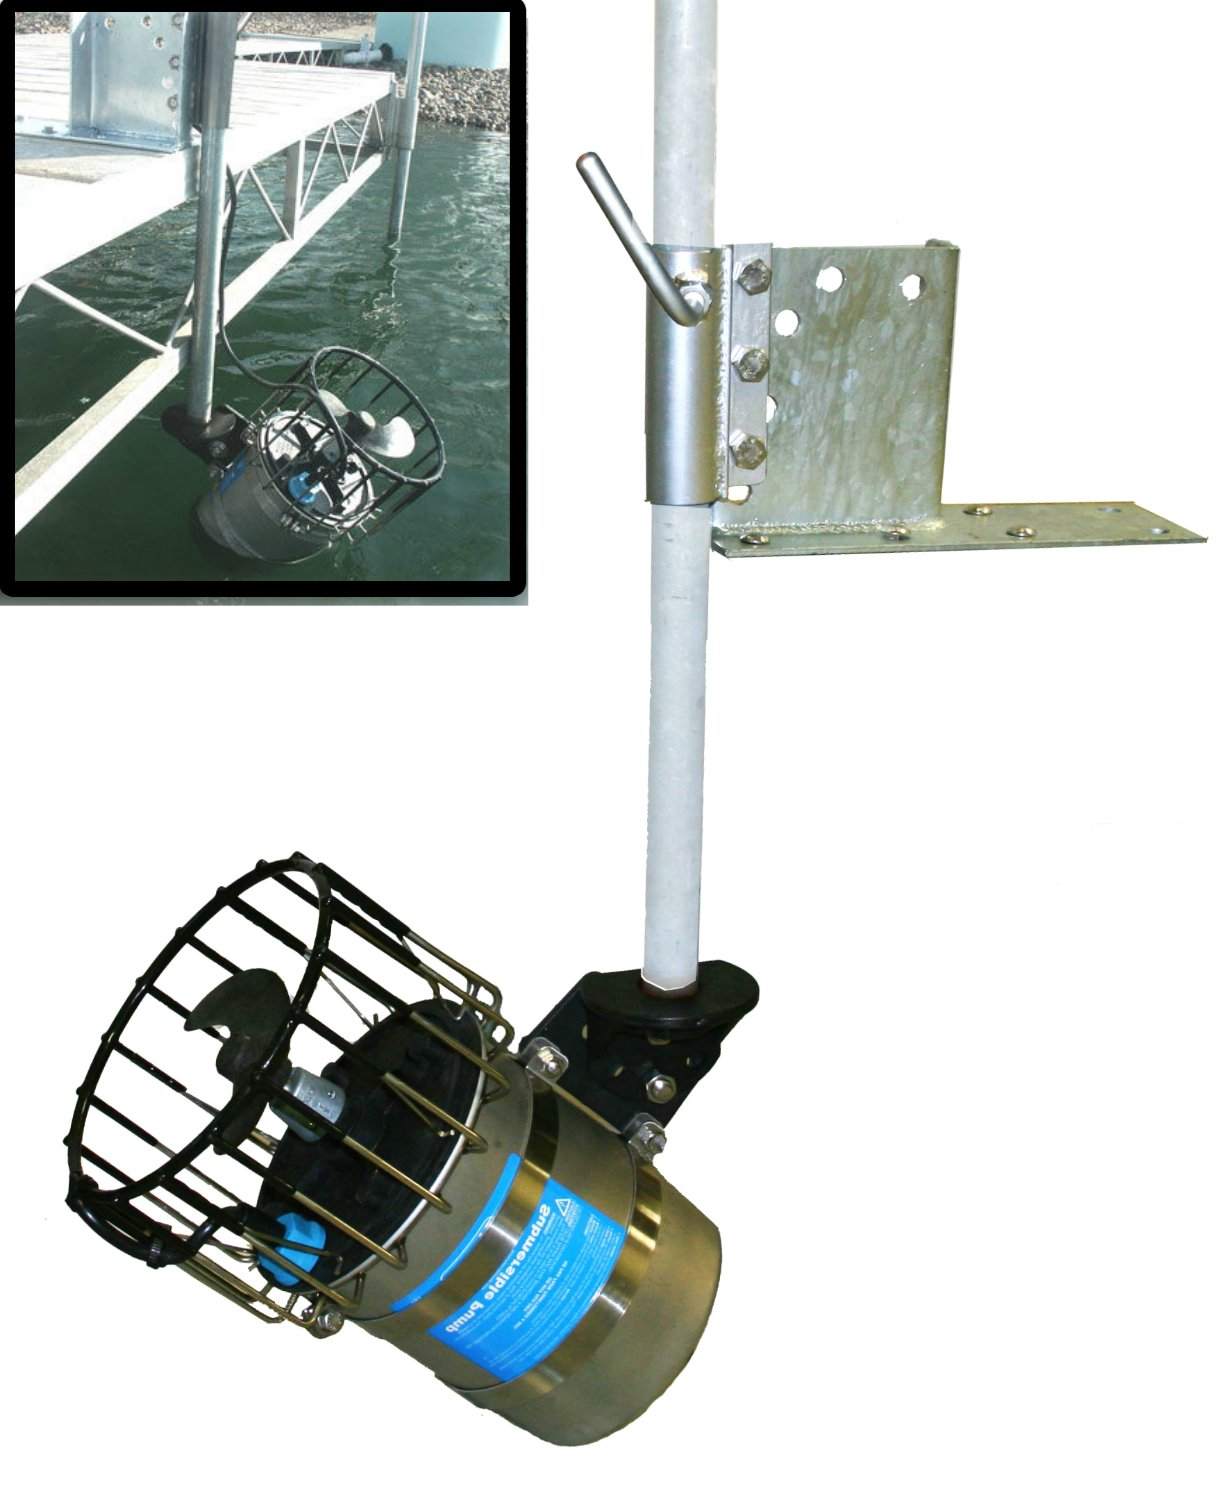 1/2 HP De-icer with Universal Dock & Pier Mount for Winter Lake or Pond Deicing (w/50ft cord)